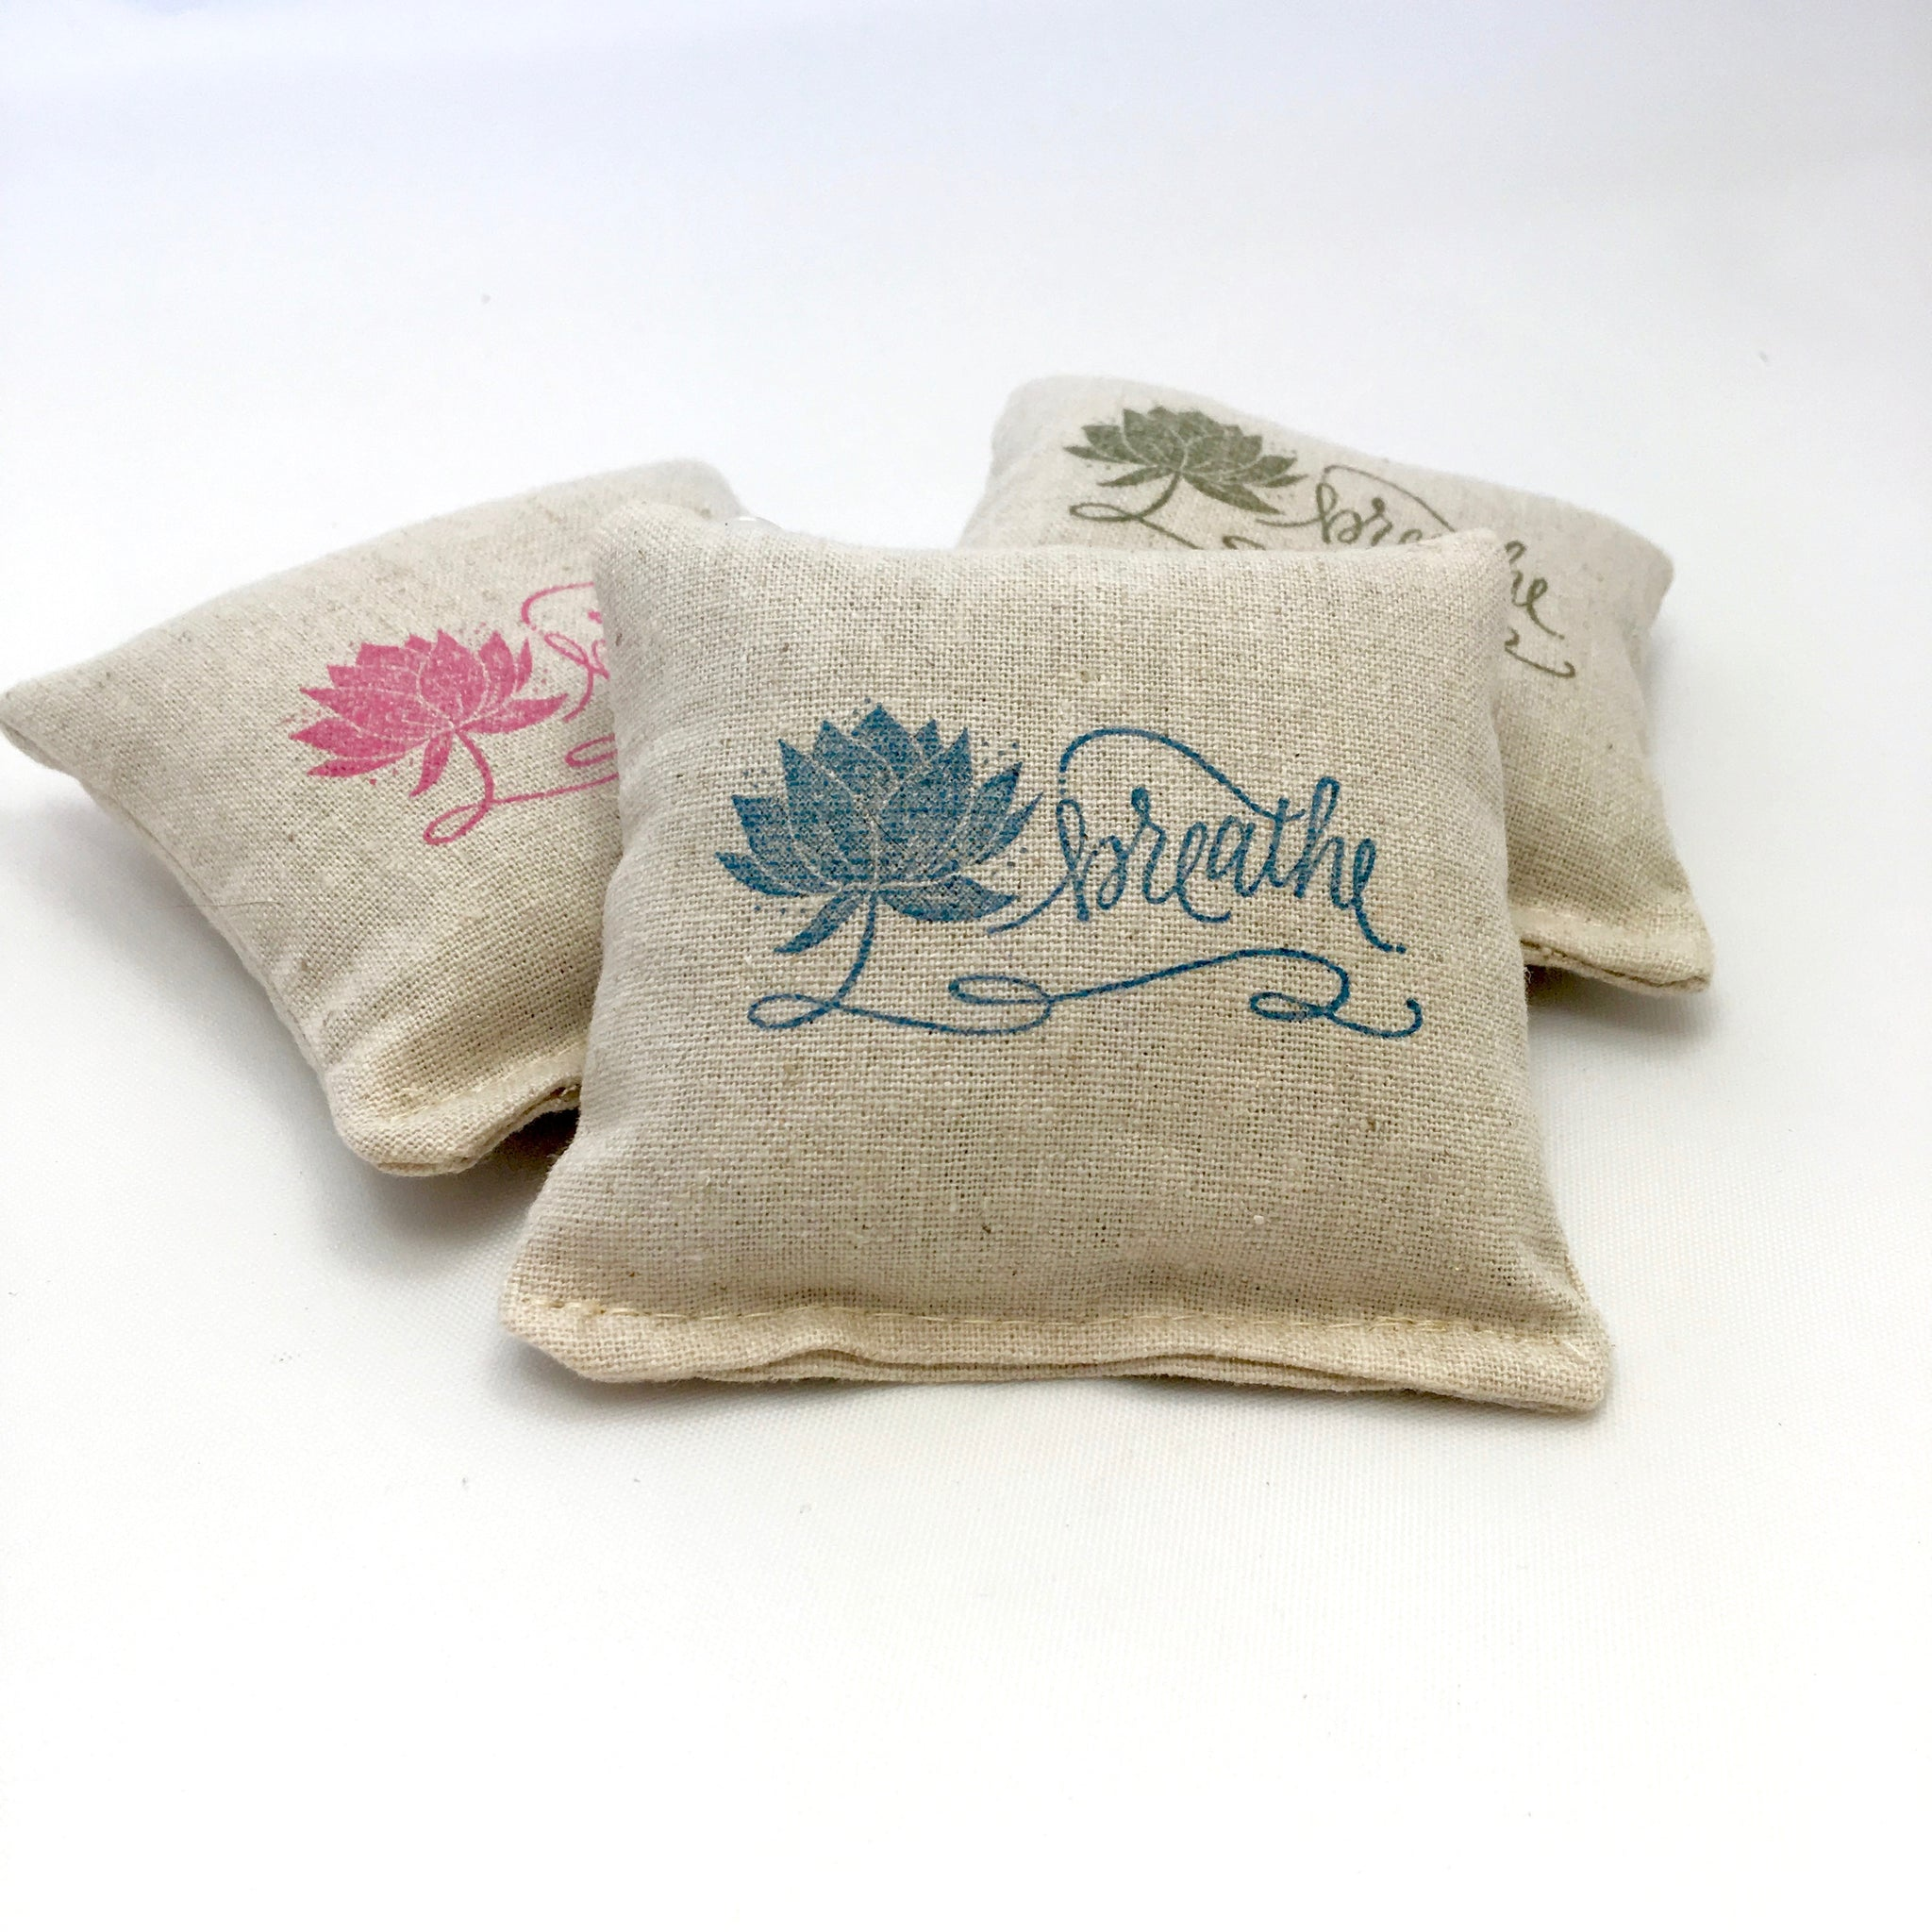 Breathe Design Inked Sachet - Choice of Ink Color and Scent